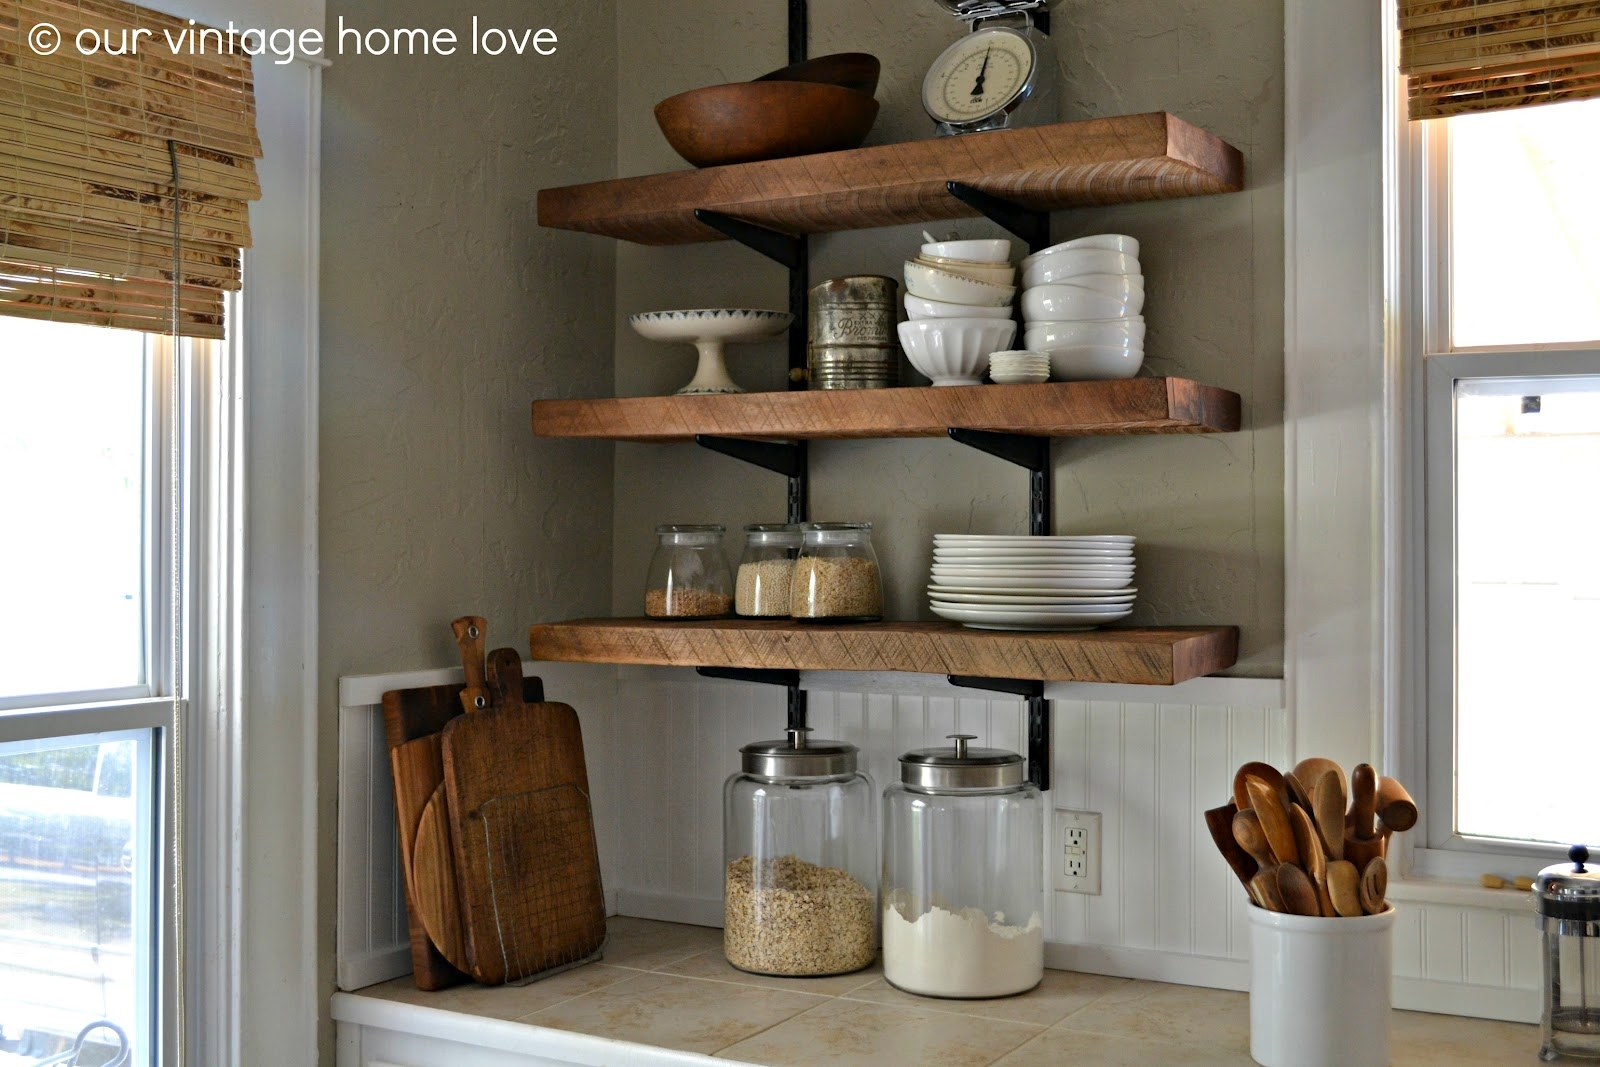 Our Vintage Home Love Reclaimed Wood Kitchen Shelving Reveal Throughout Kitchen Shelves (Image 10 of 15)